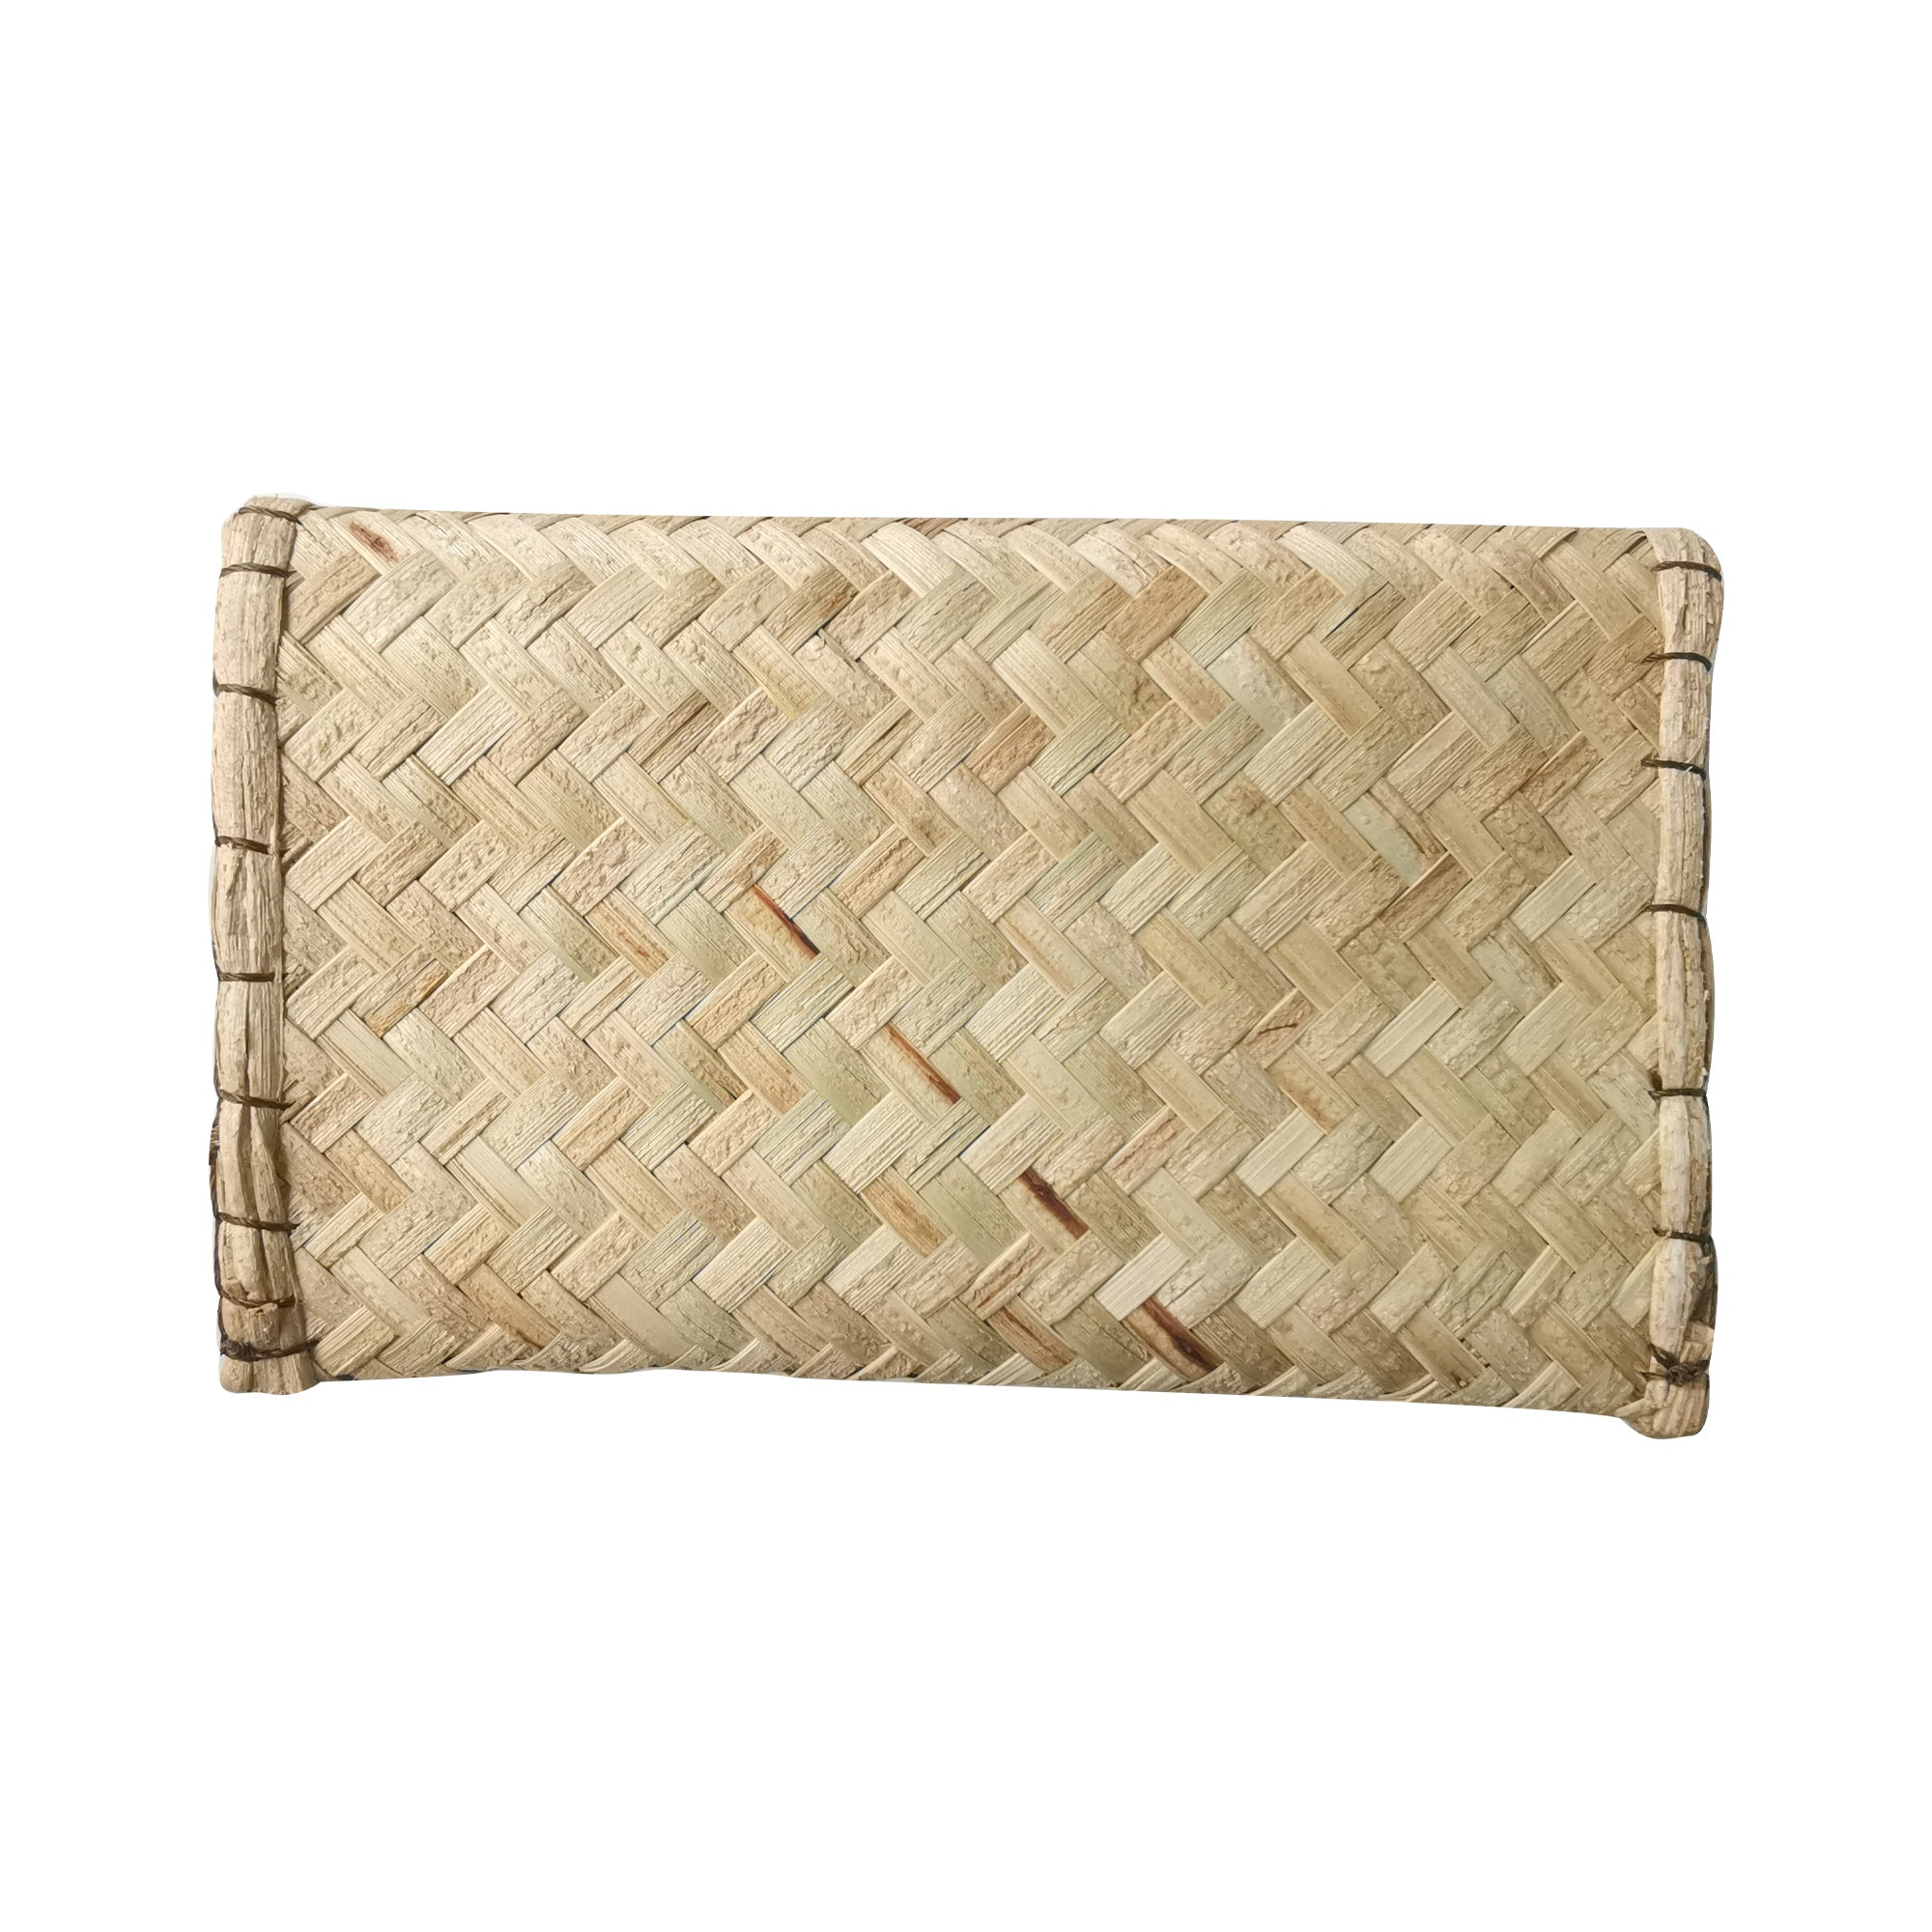 Brown Embroidery Medium Clutch